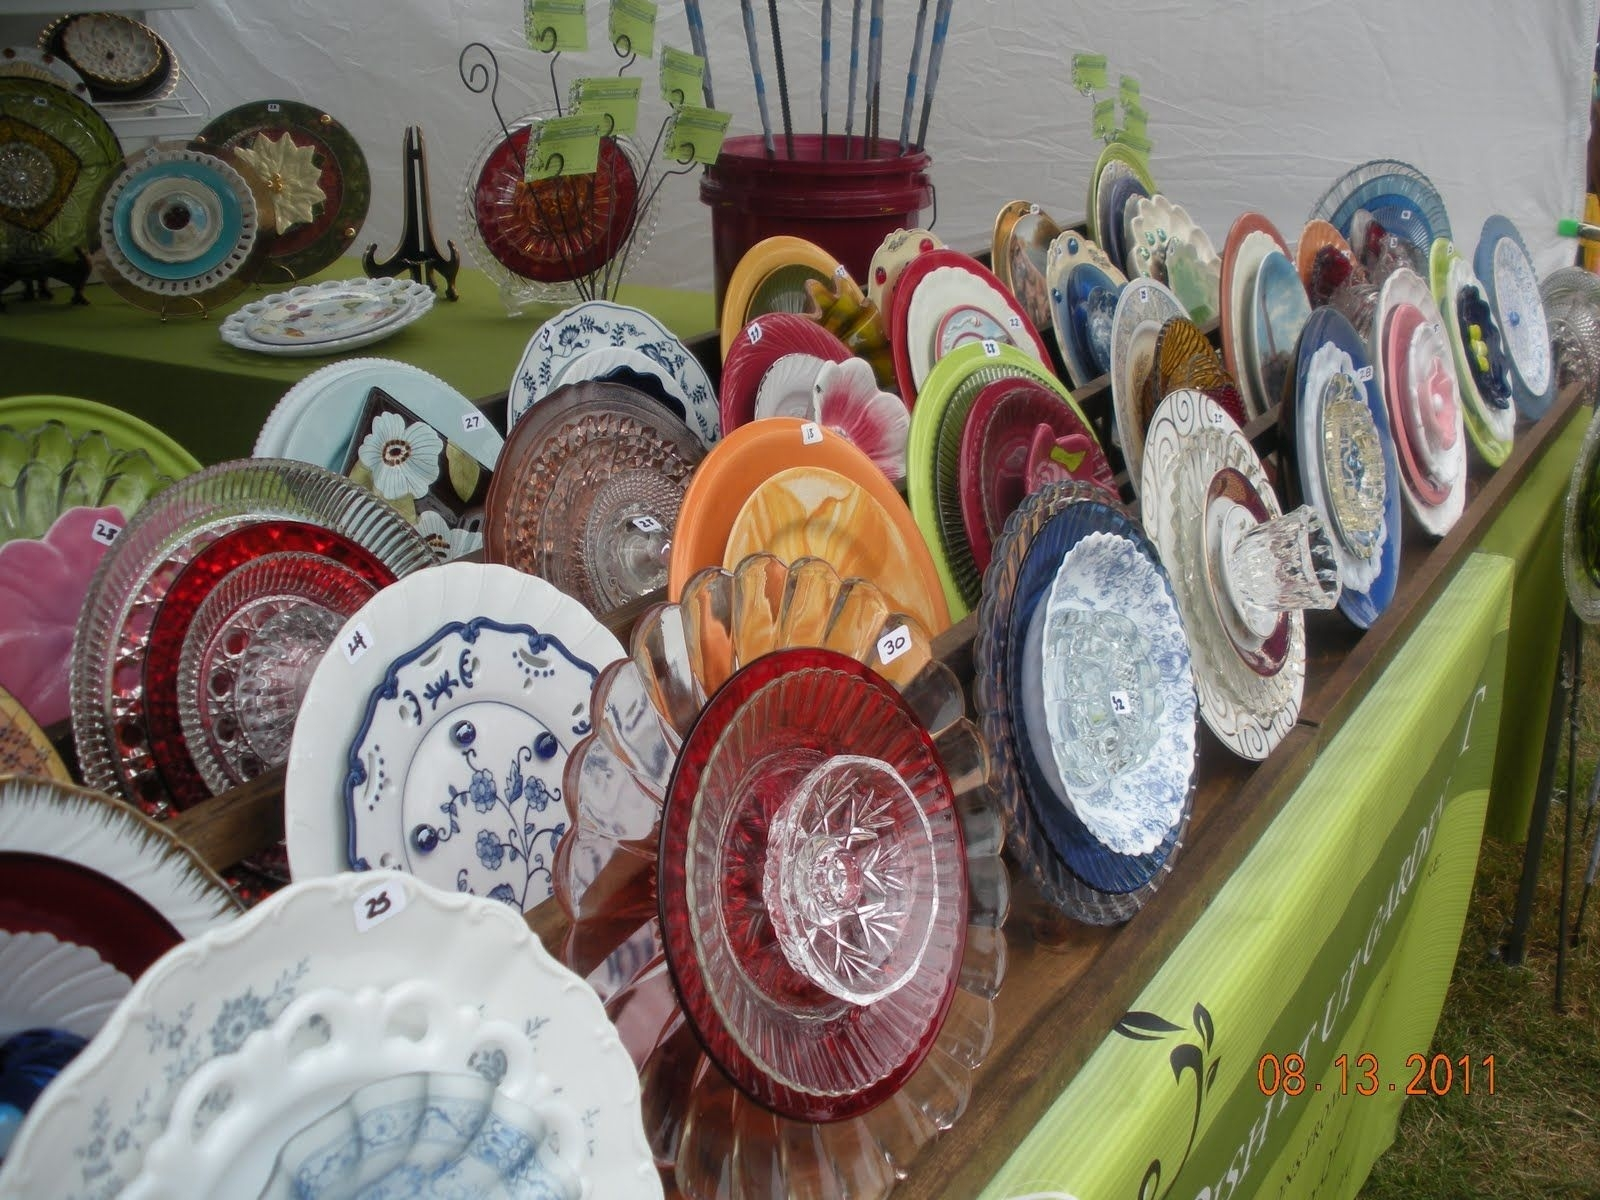 Garden Flowers Made Out Of Old Dishes | Loved These Glass Plate in Garden Flowers Made From Dishes